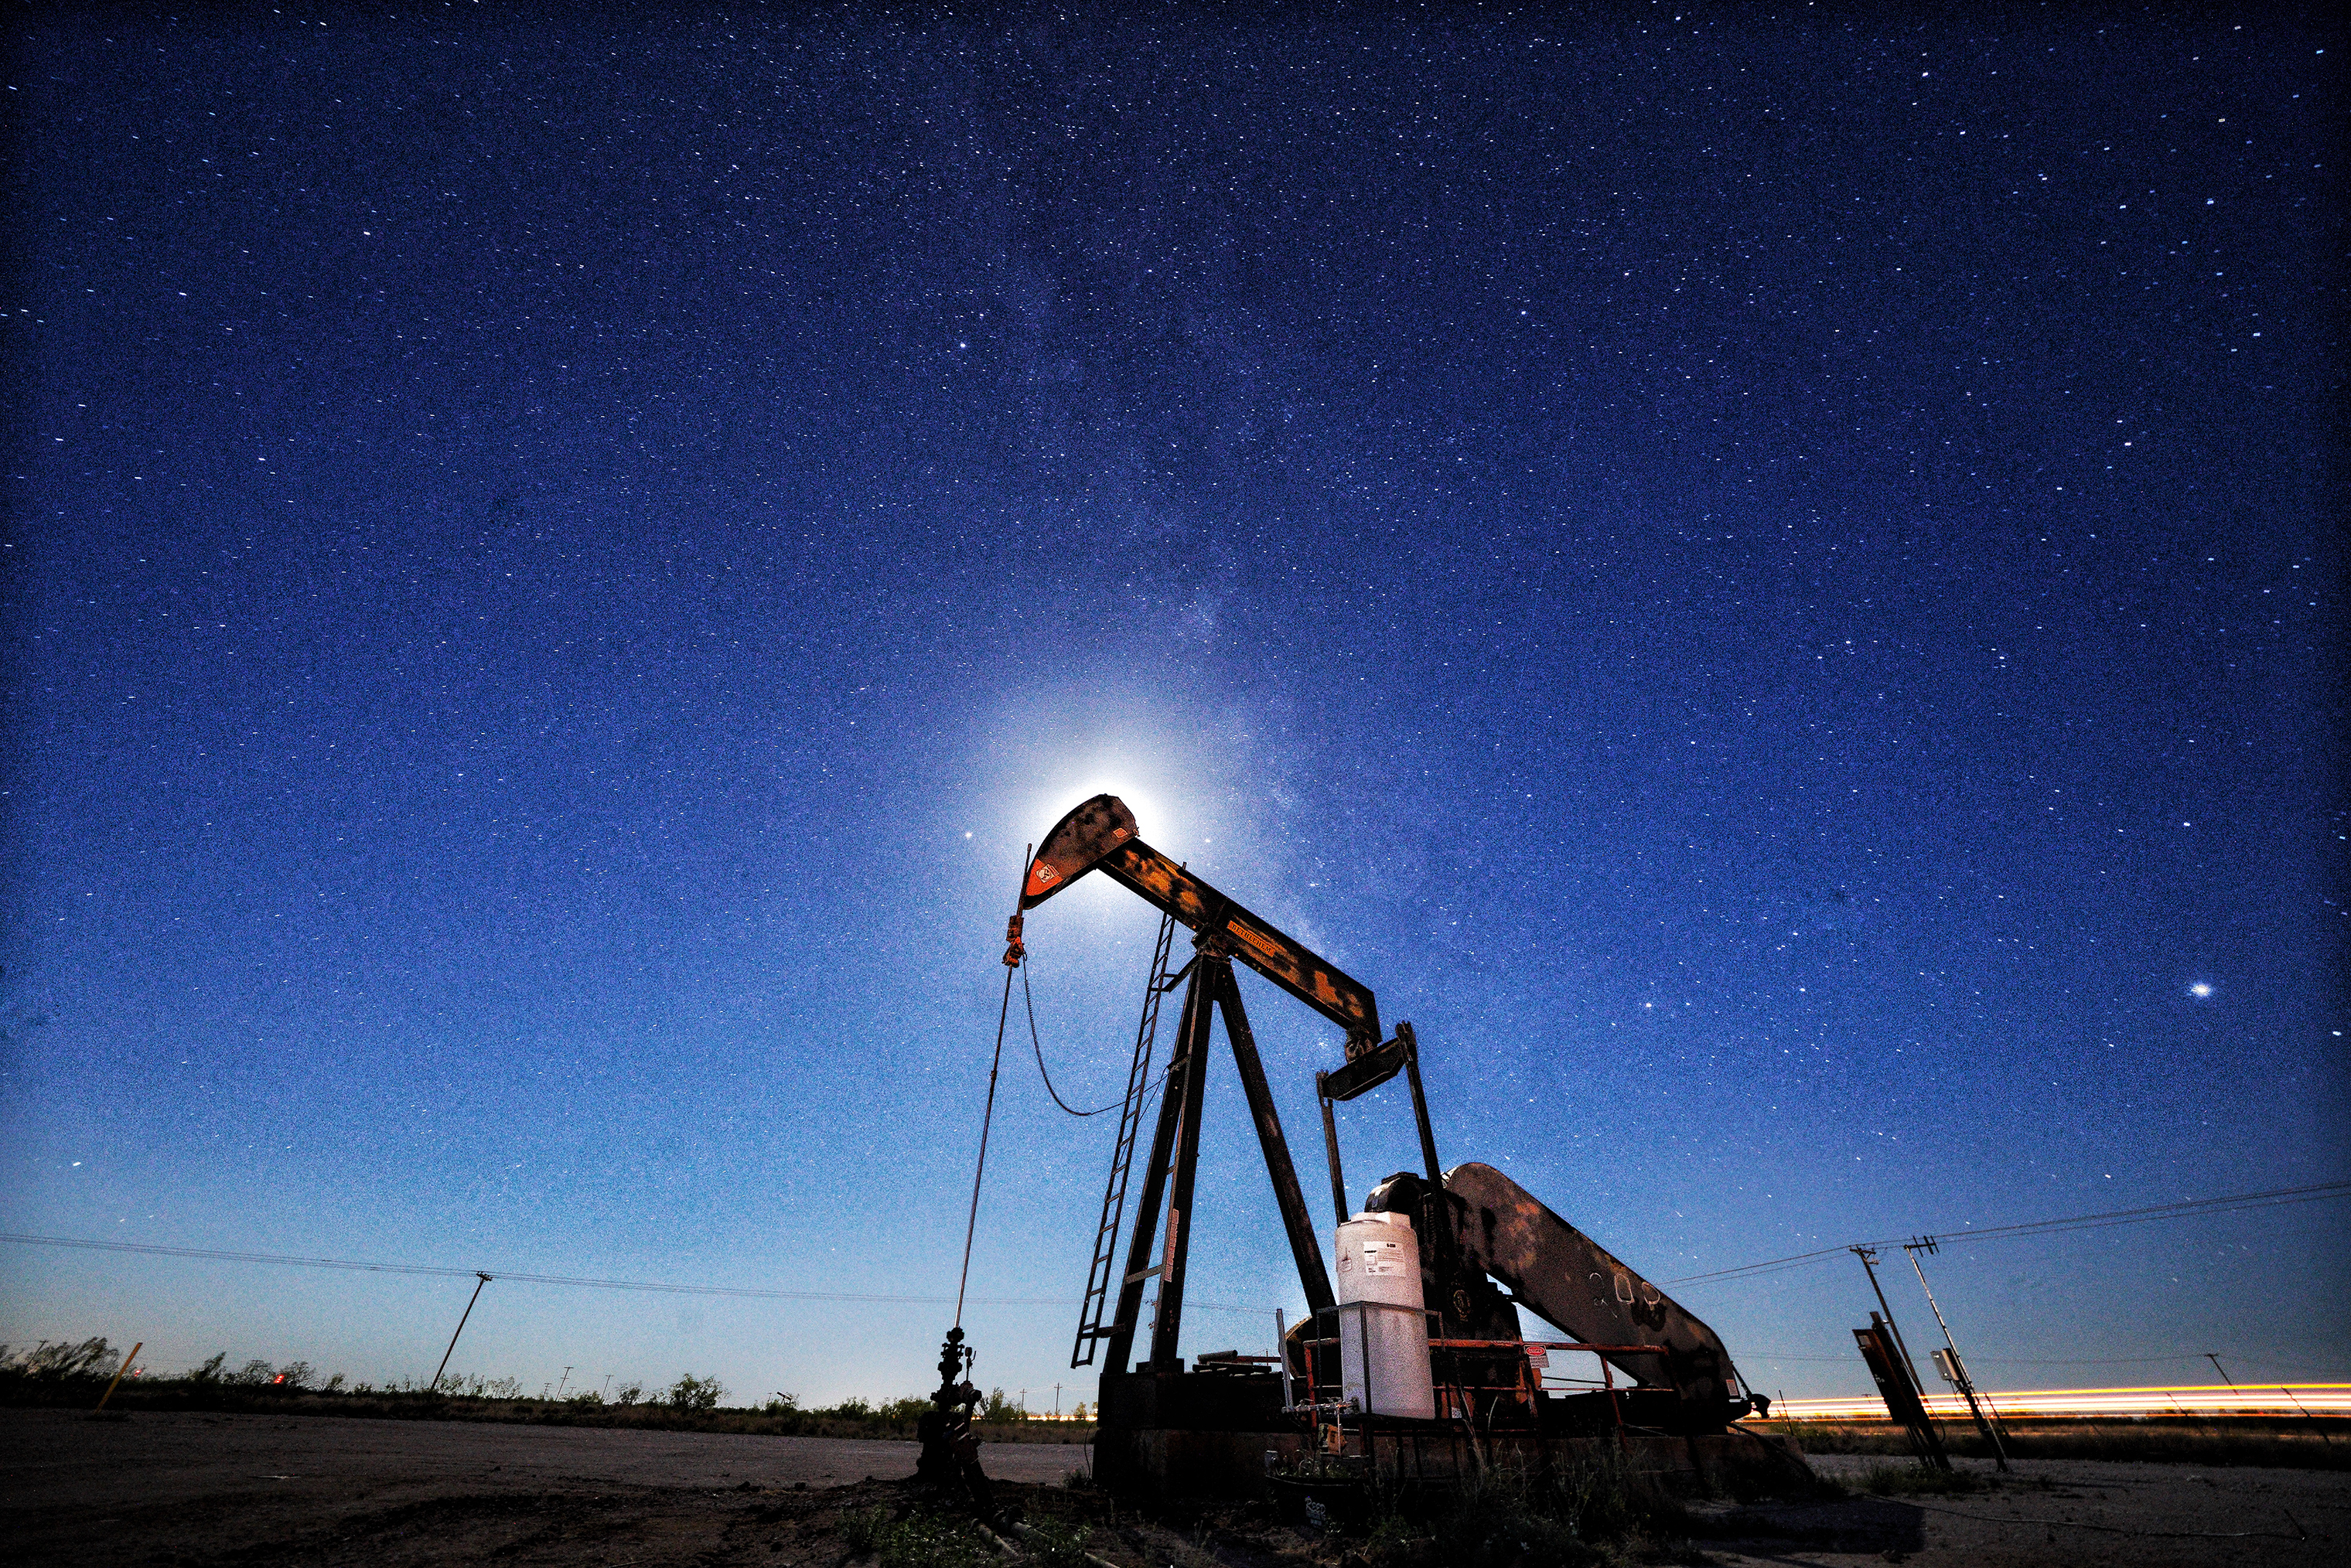 permian basin west texas fracking oil exxon 01